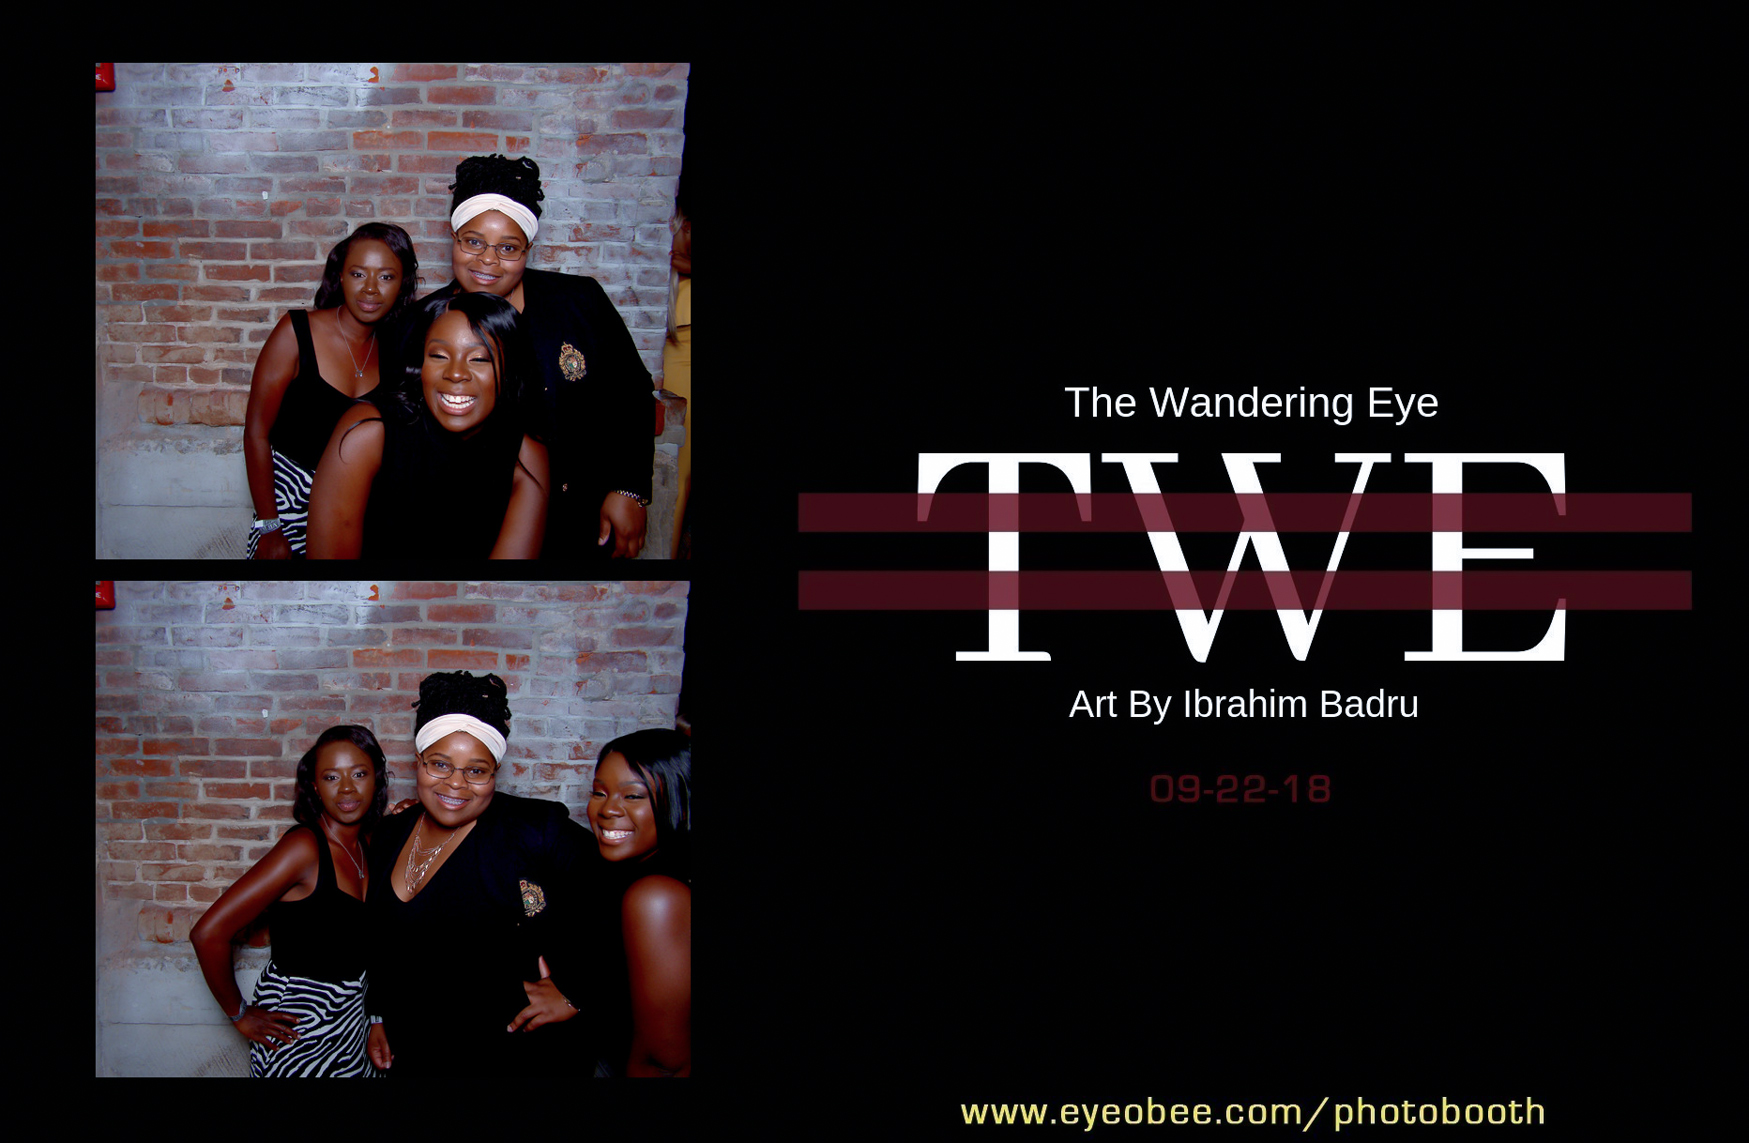 eyeobee PhotoBooth The Wandering eye art by Ibrahim Badru-0-4.jpg